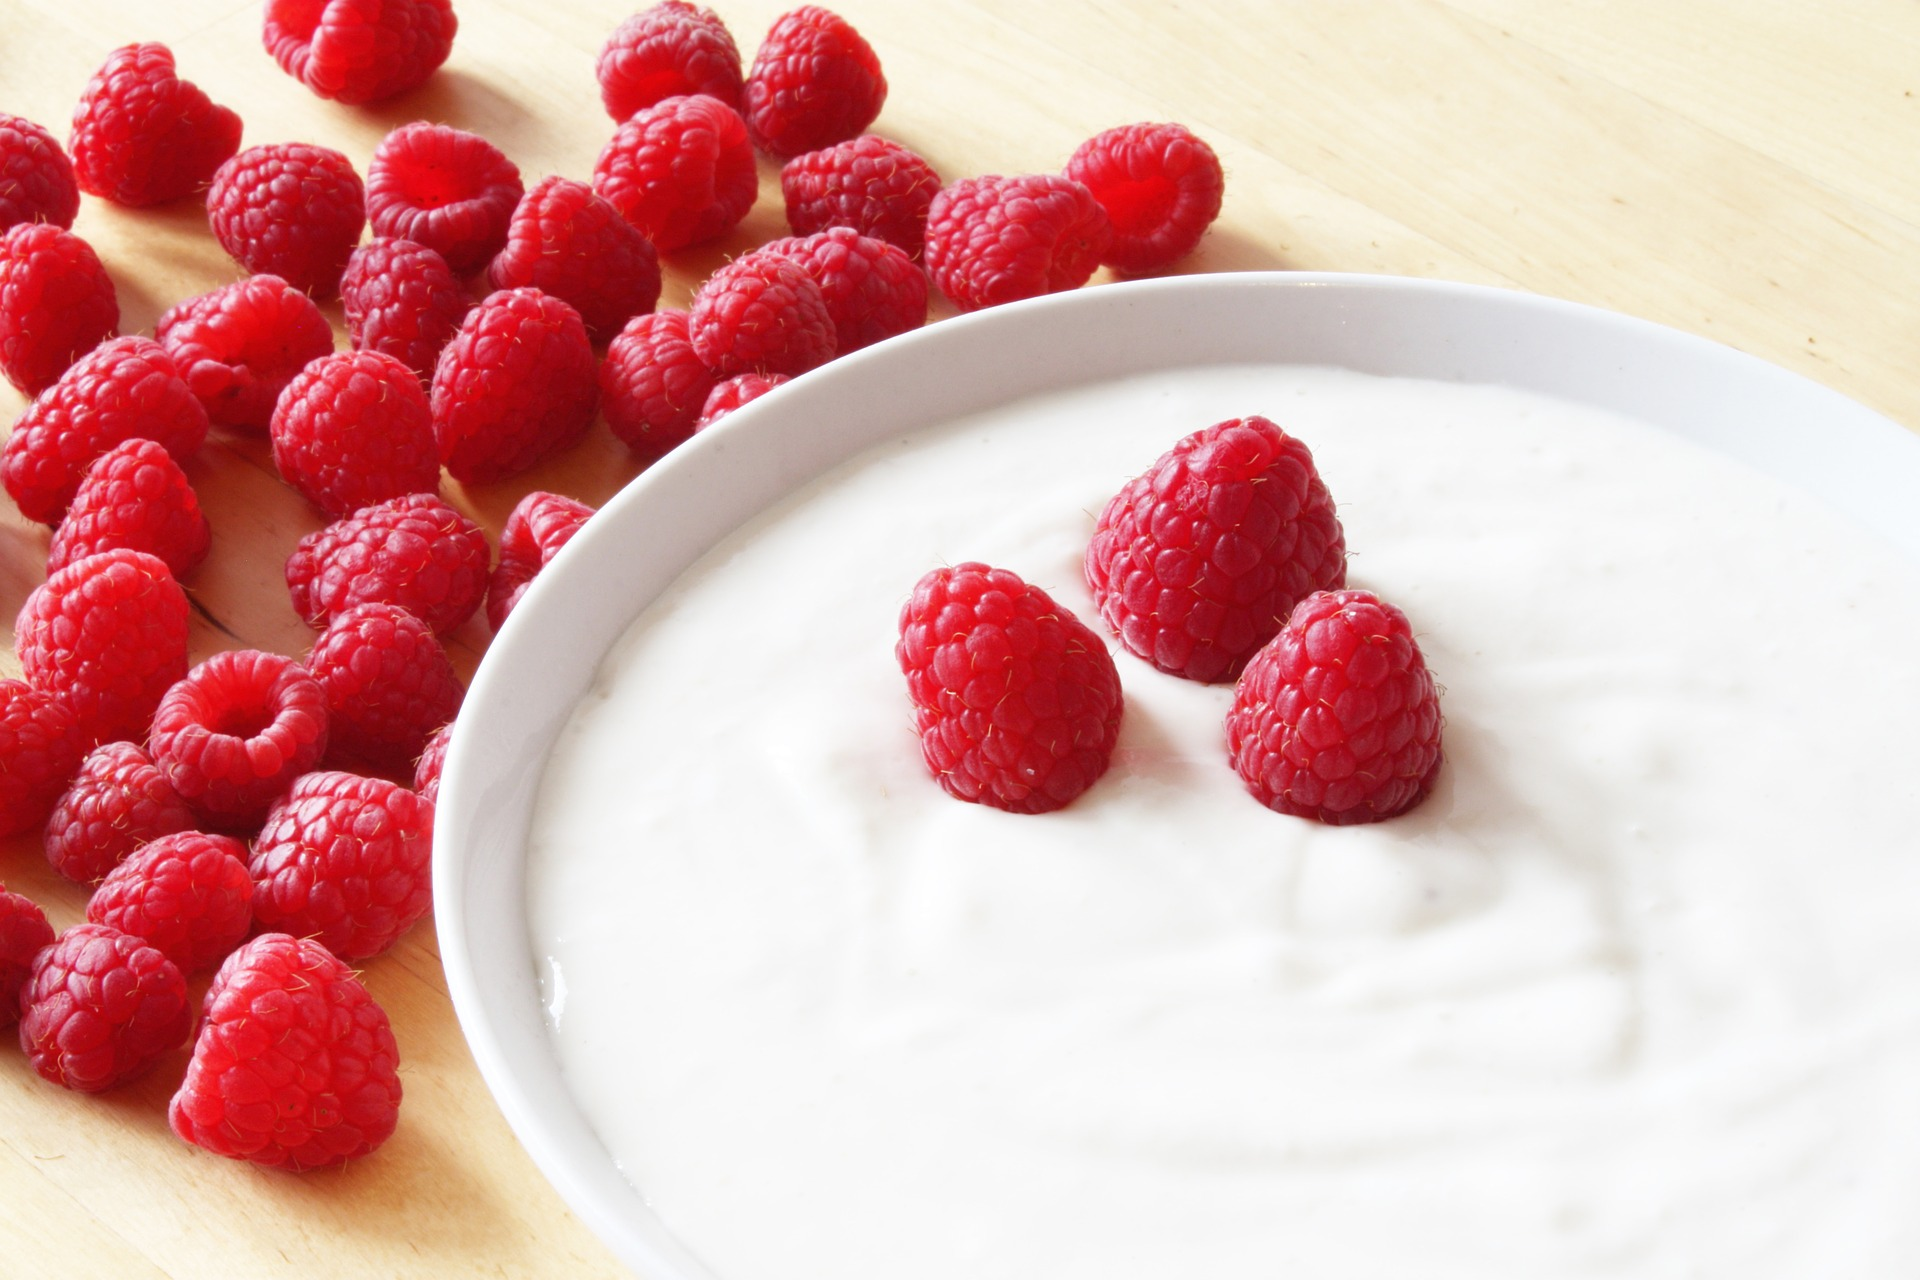 Yogurt is packed with nutrients that can include calcium and magnesium, good bacteria, and protein. But not all yogurts are as healthy as each other. In this article, we explain the good and the bad, and what makes the various types of yogurts different. Find out why some may benefit health and others are best avoided.